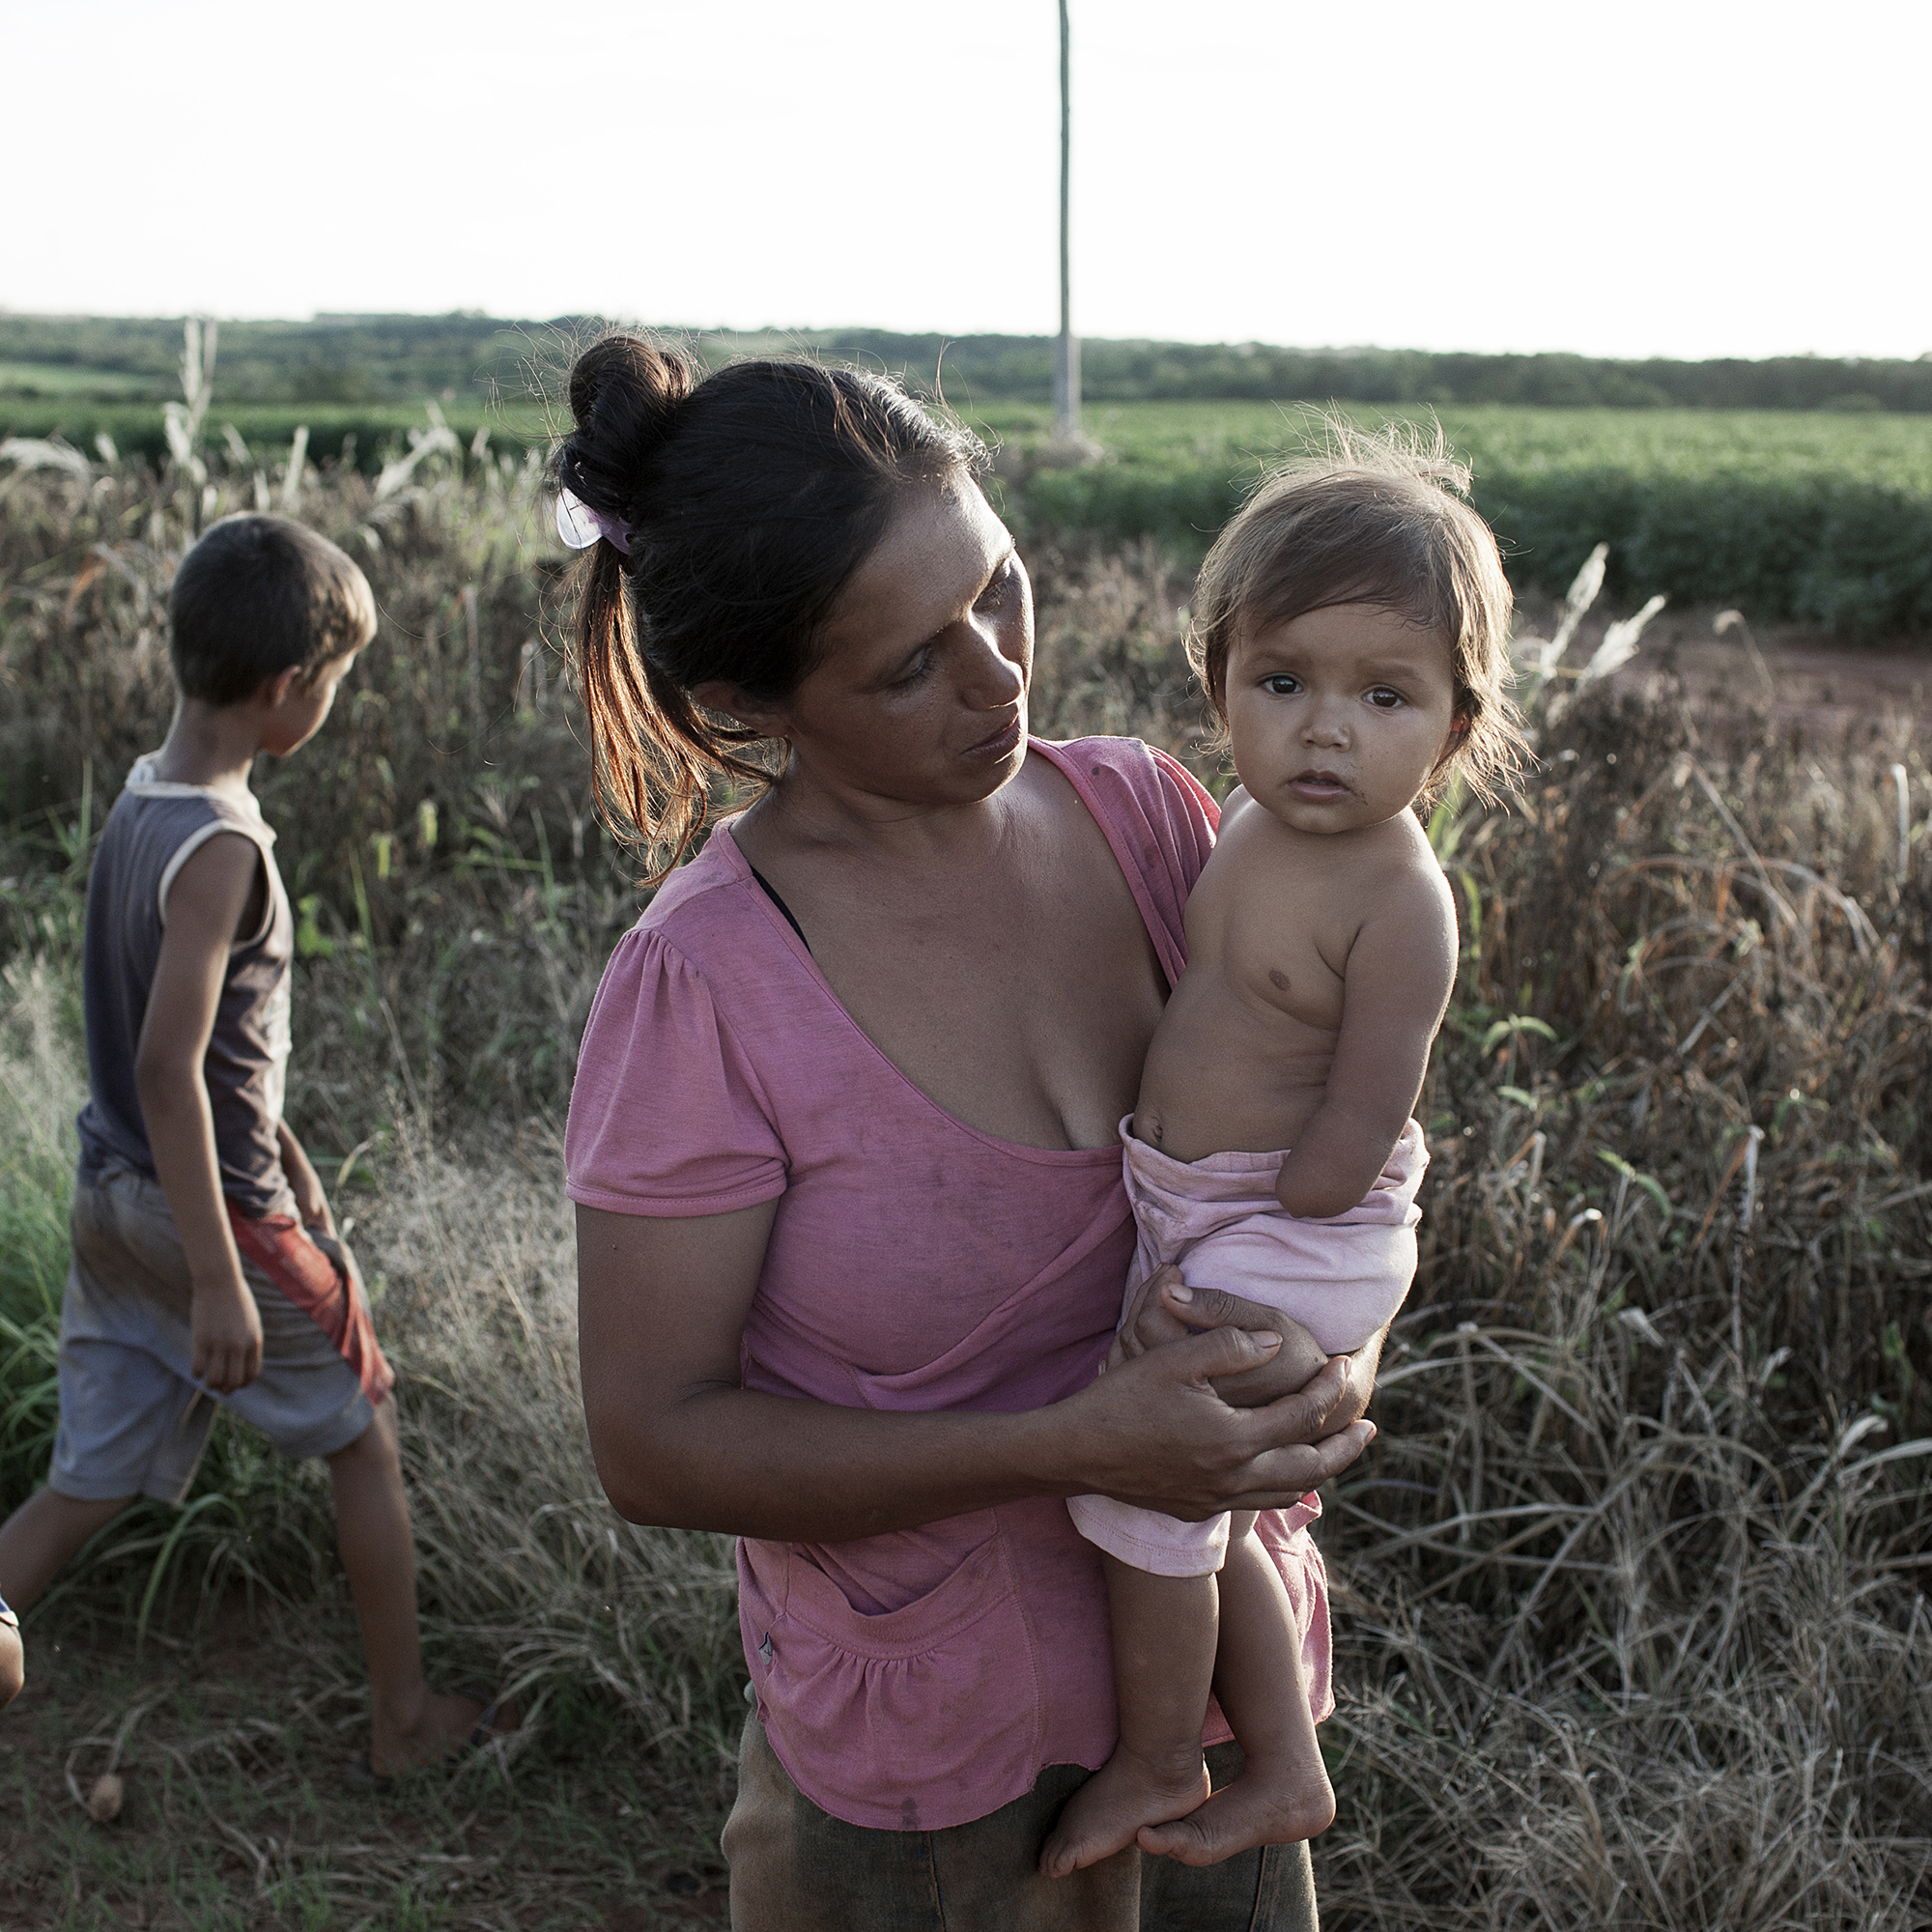 Magdalena Prete, 30, with her daughter Andrea Natali. Prete believes her daughter was born without a hand due to exposure to pesticides during her pregnancy.